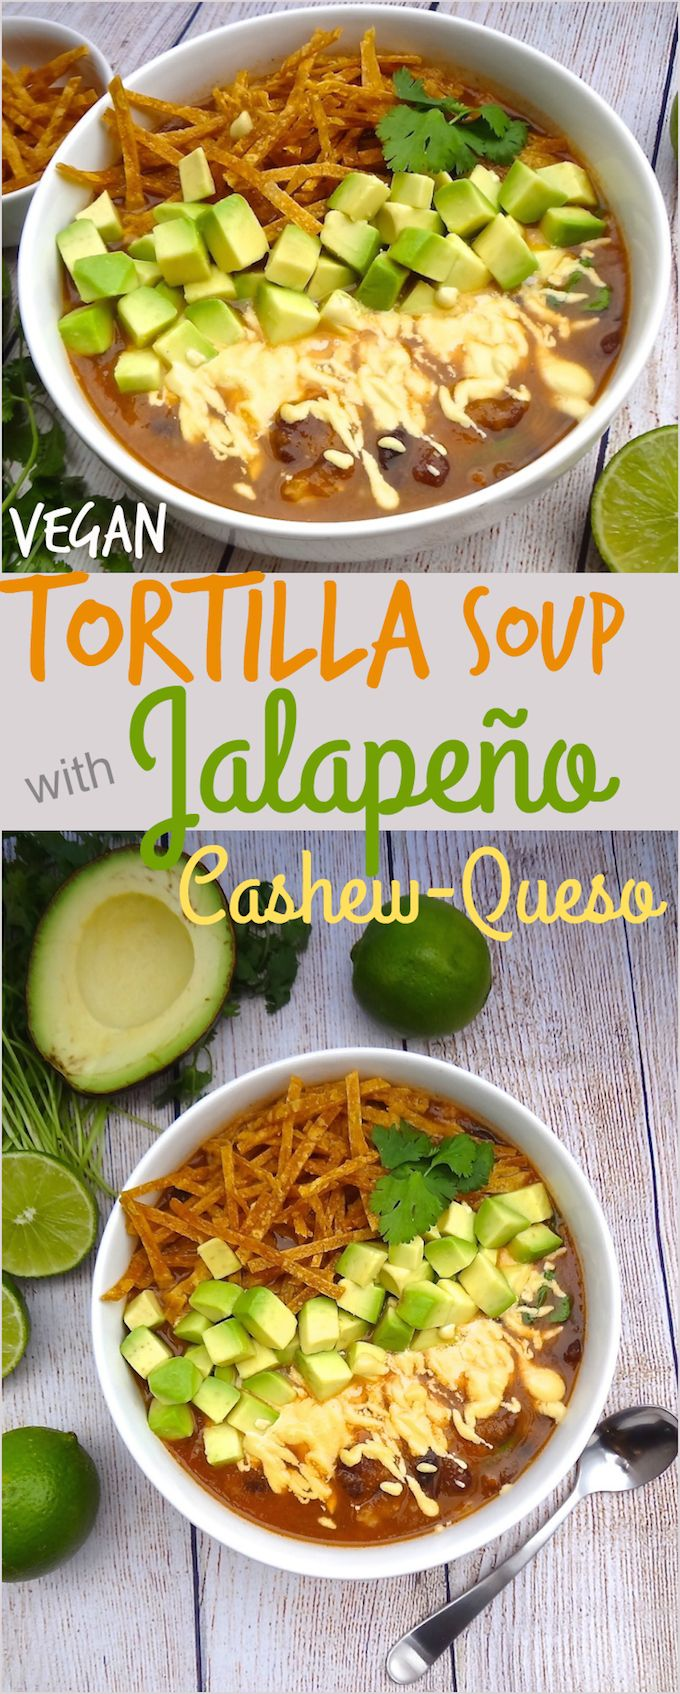 Holy Goodness! This is the best vegan tortilla soup ever! Who could resist avocado and jalapeño cashew-queso in their tortilla soup!?